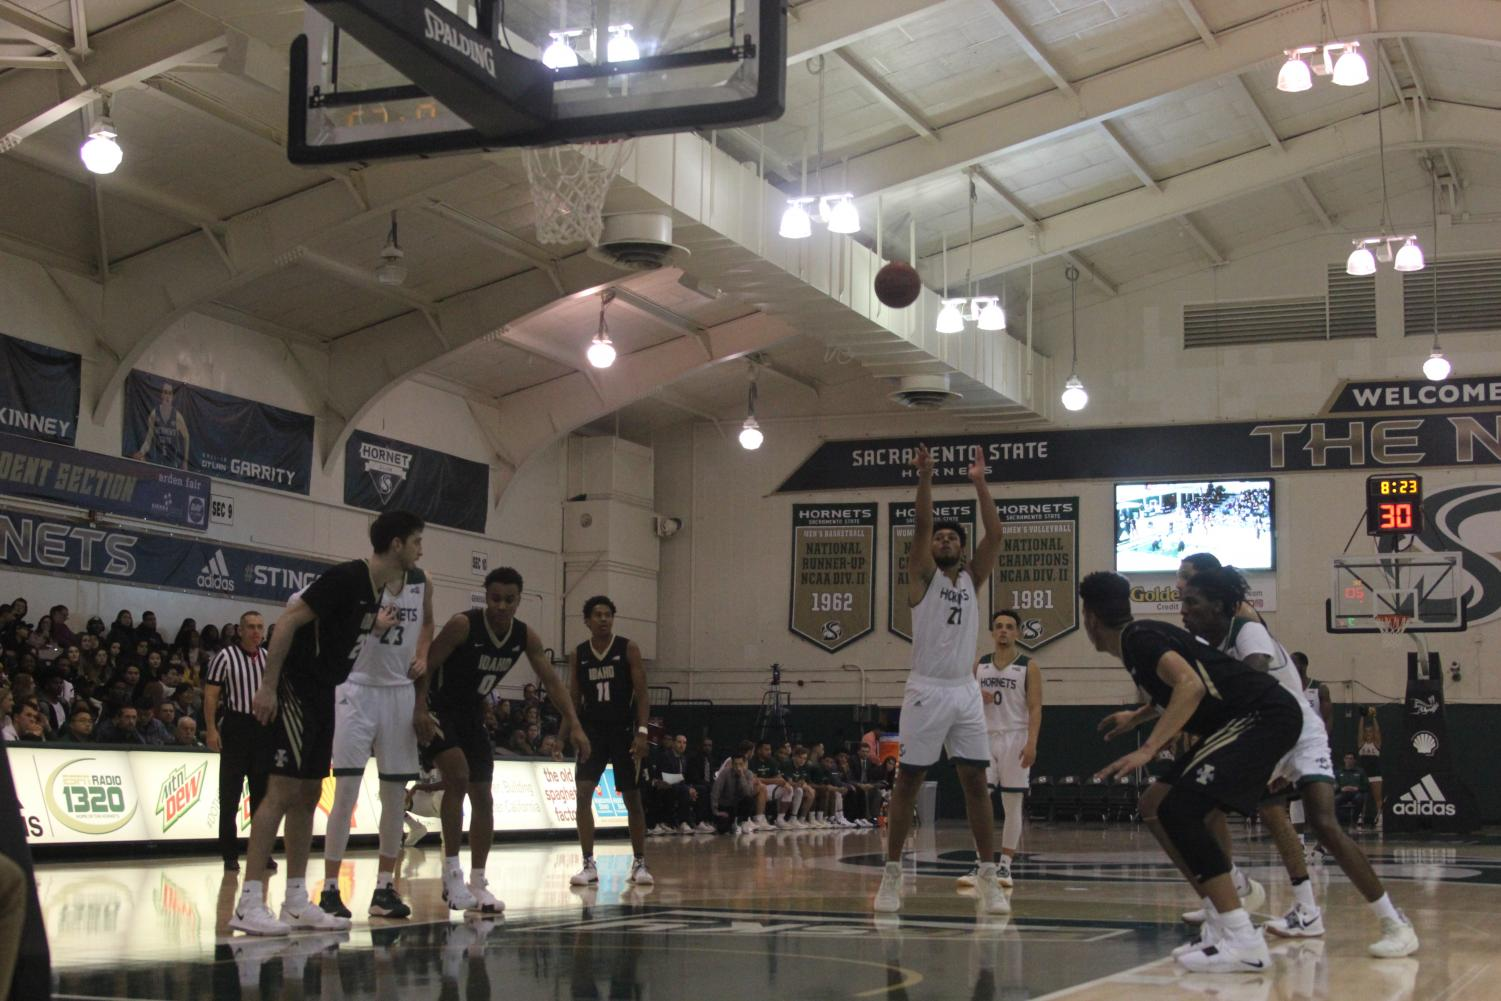 Sac State sophomore Ethan Esposito shoots a free throw during the Hornets 69-48 win over University of Idaho on Jan. 24. The Hornets are currently 13-14 overall and 7-11 in the Big Sky Conference.